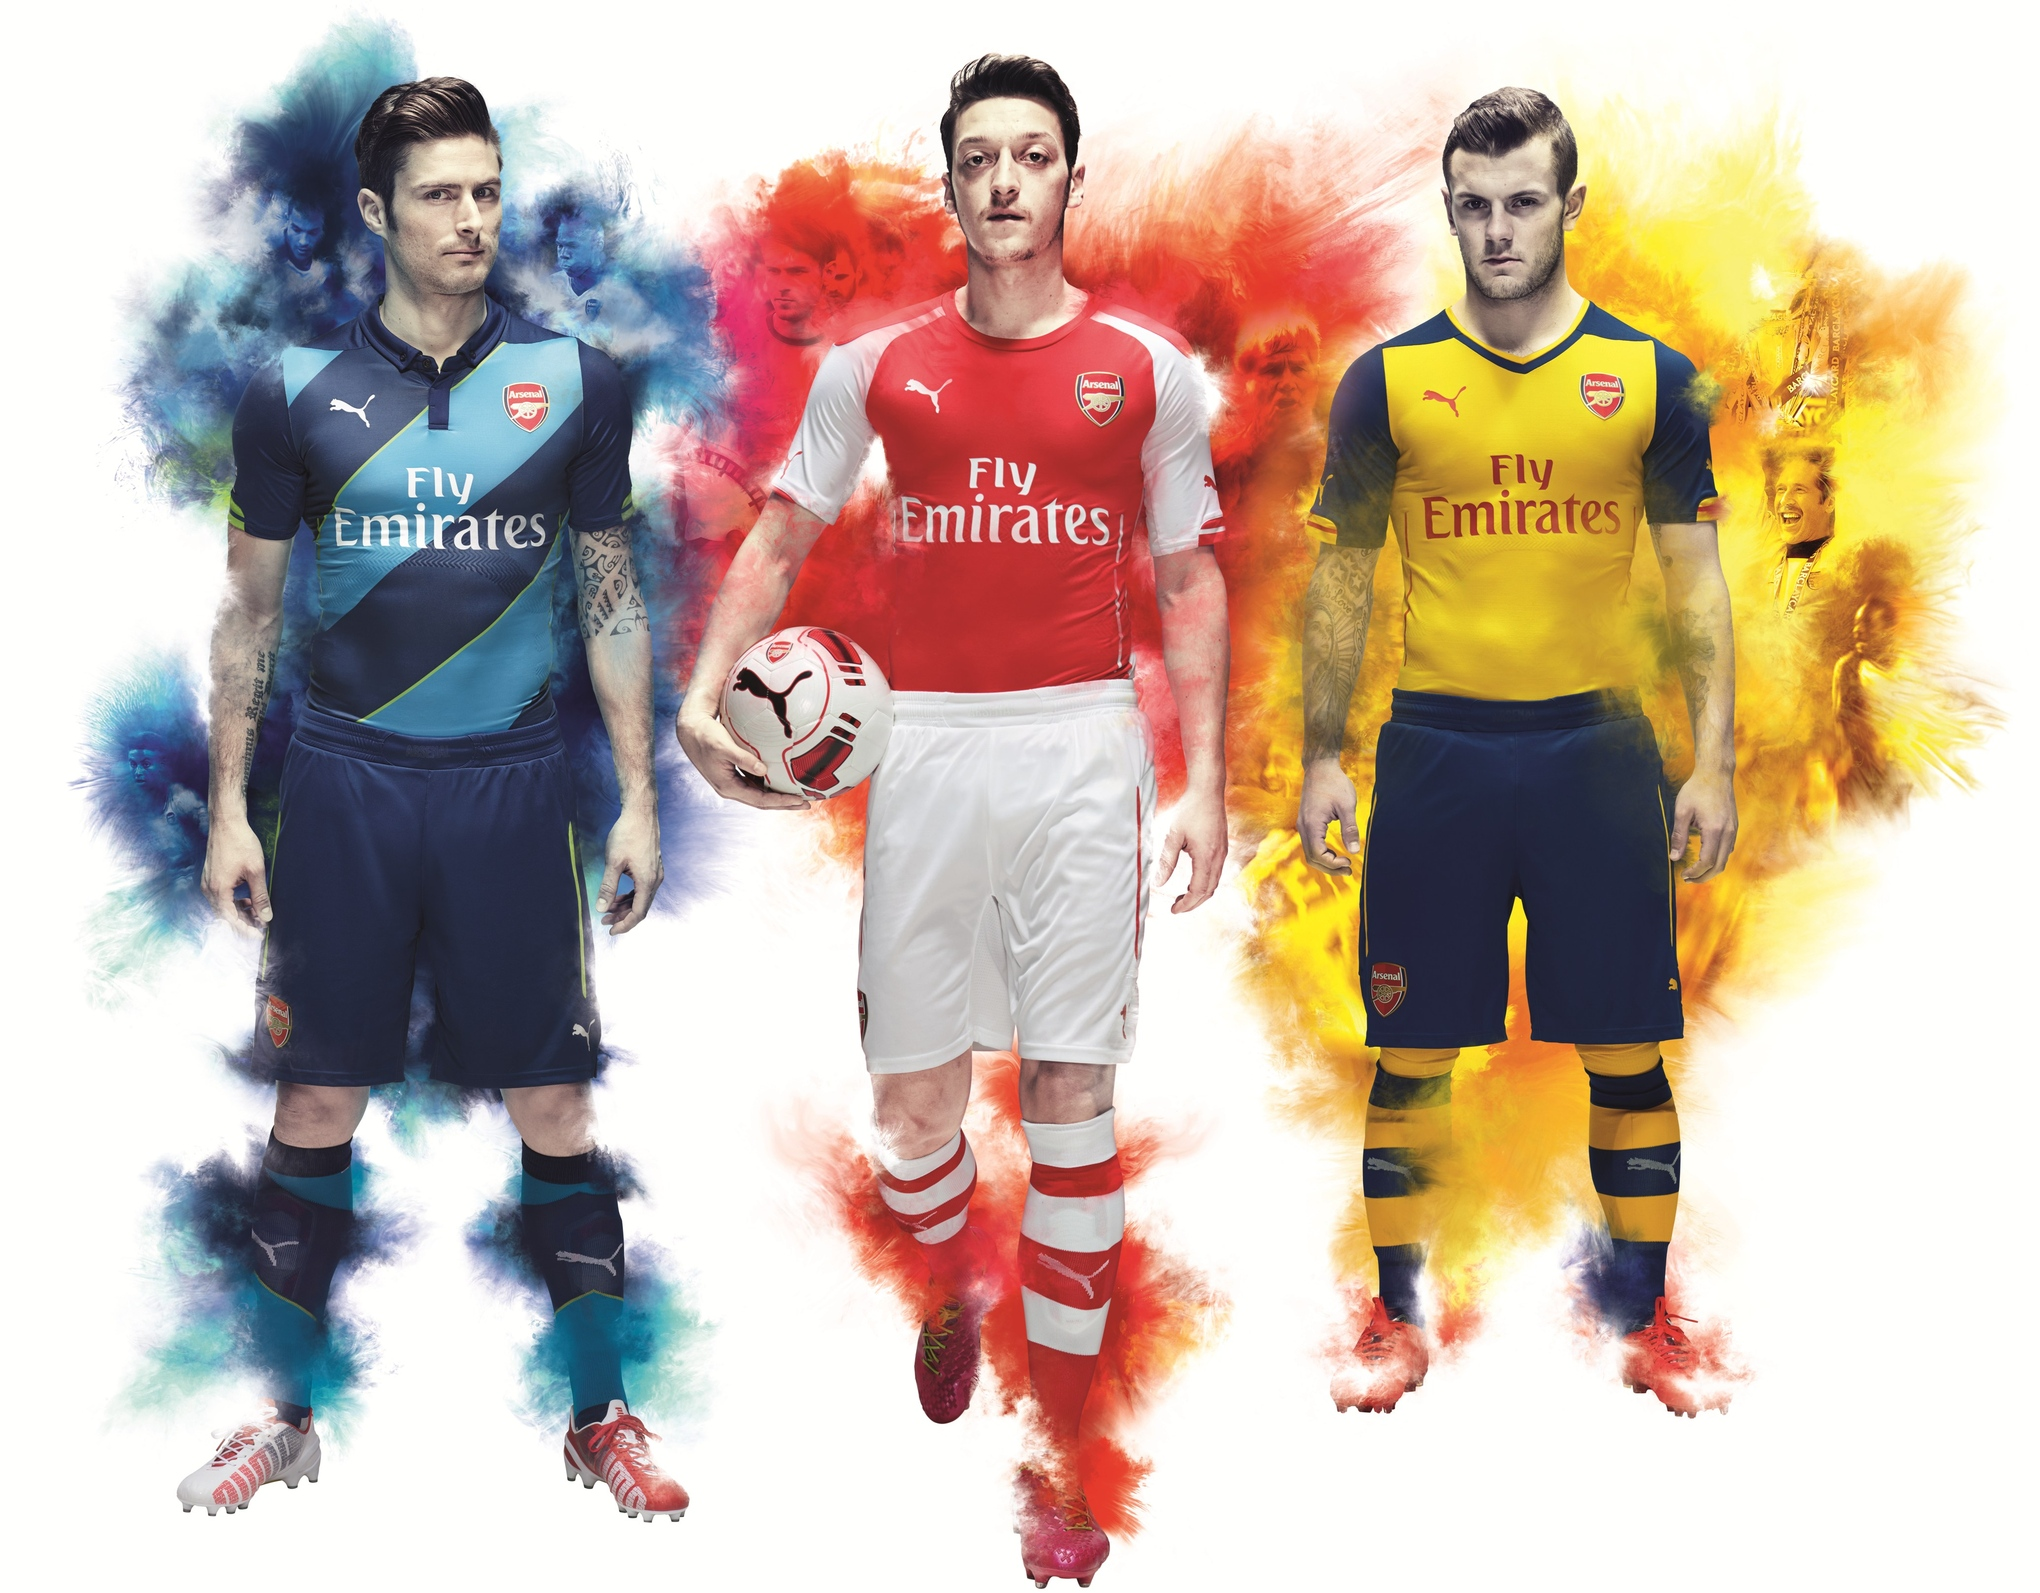 Arsenal's 2014/15 away kit recalls Invincibles, cup kit channels cult classic